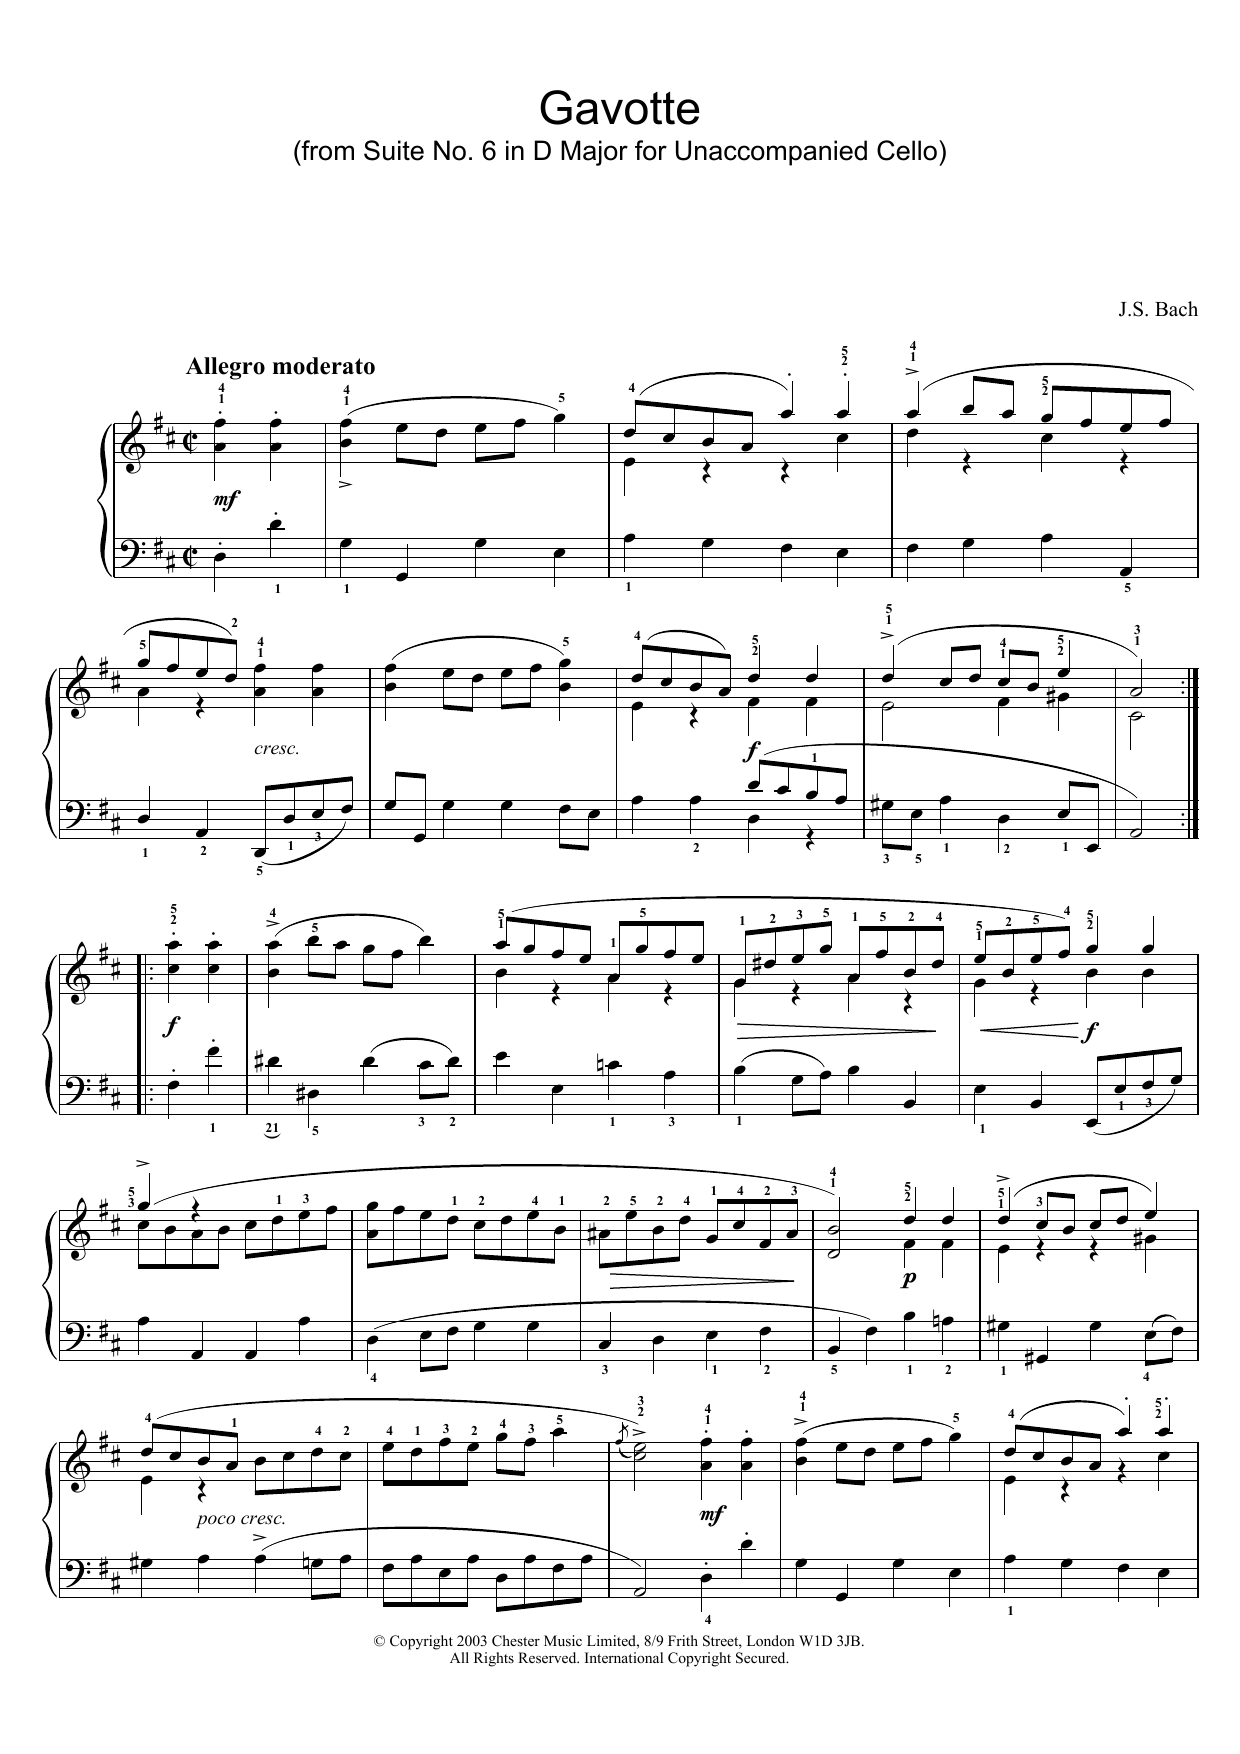 J.S. Bach Gavotte (from Suite No. 6 in D Major for Unaccompanied Cello) sheet music preview music notes and score for Piano including 2 page(s)